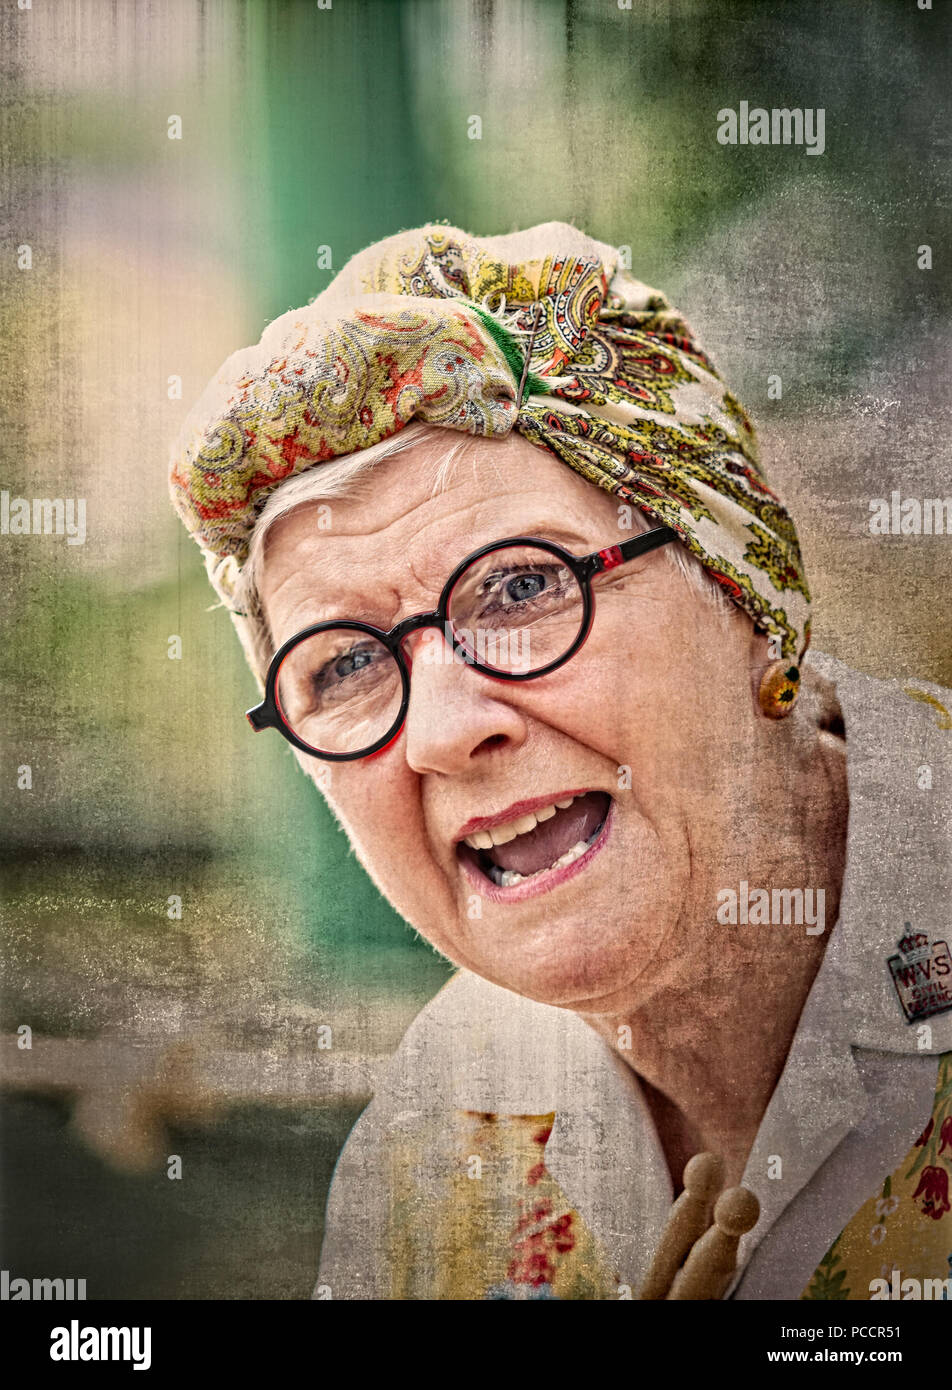 Close-up portrait of woman in 1940's costume dressed as cleaning lady (charlady) wearing head scarf & overalls, Black Country Museum 1940's event. - Stock Image